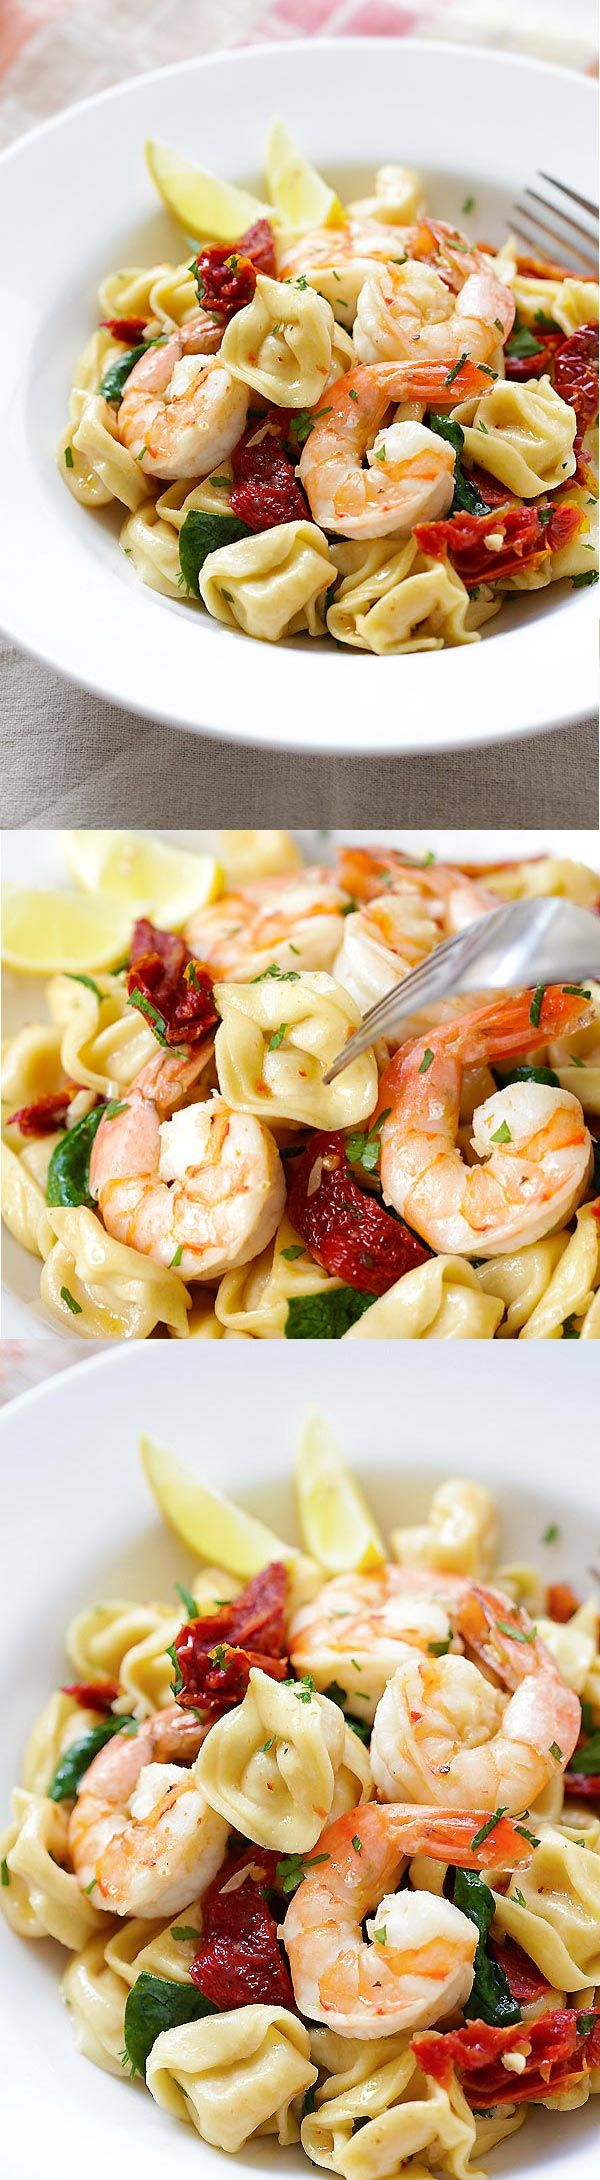 delicious women     restaurant   s tortellini sneaker shrimp  garlic better Shrimp with Easy Garlic so than and Tortellini AMAZING recipe  rasamalaysia com    min